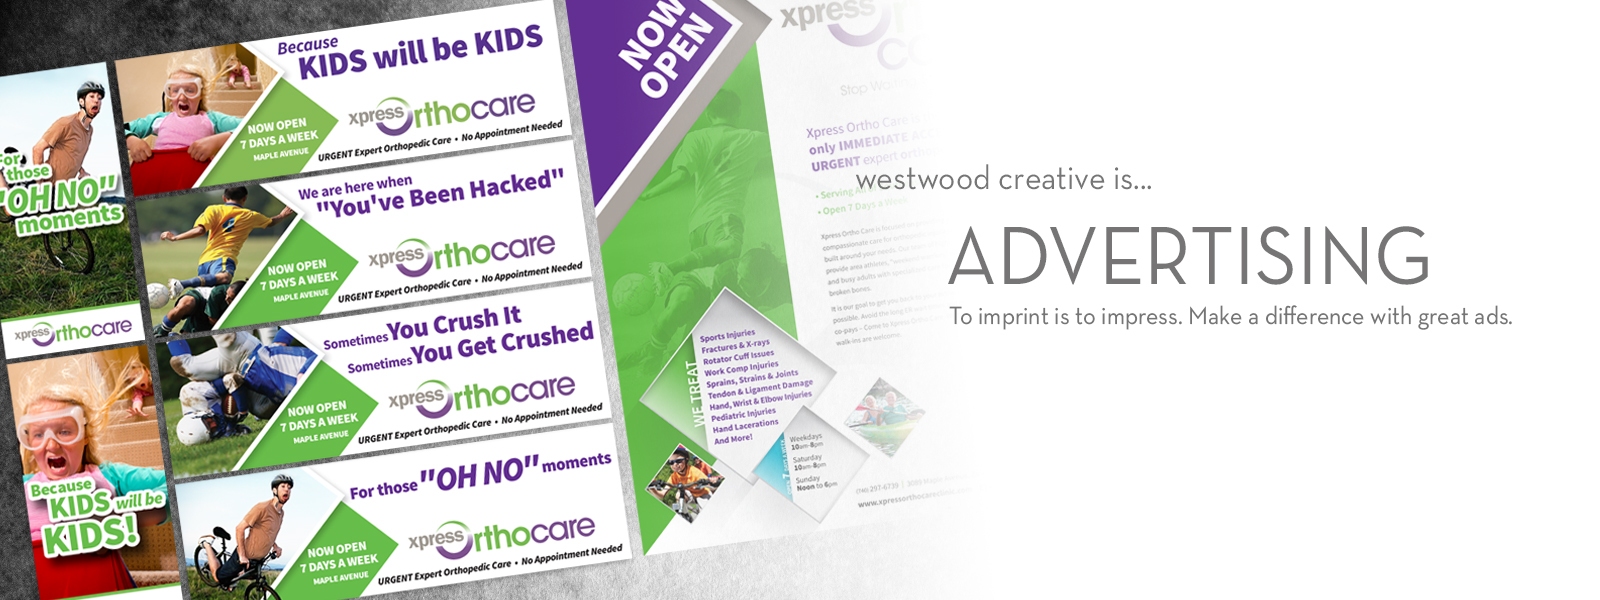 westwood creative advertising